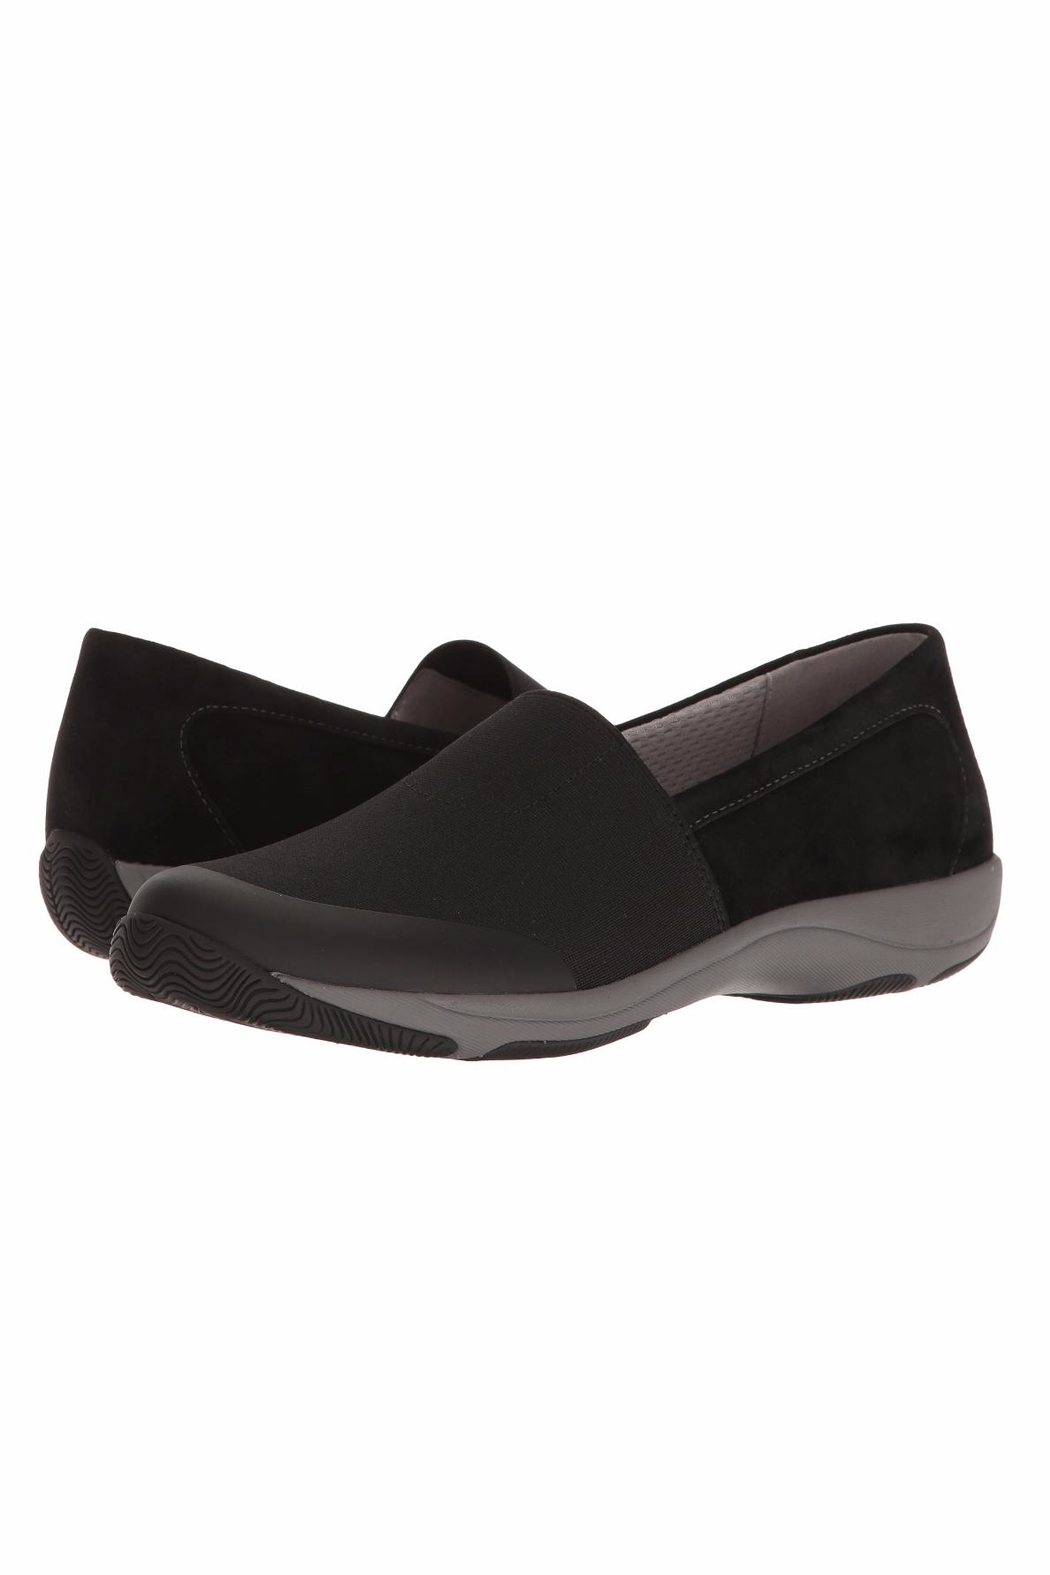 Dansko Harriette Slip On Sneaker - Front Full Image